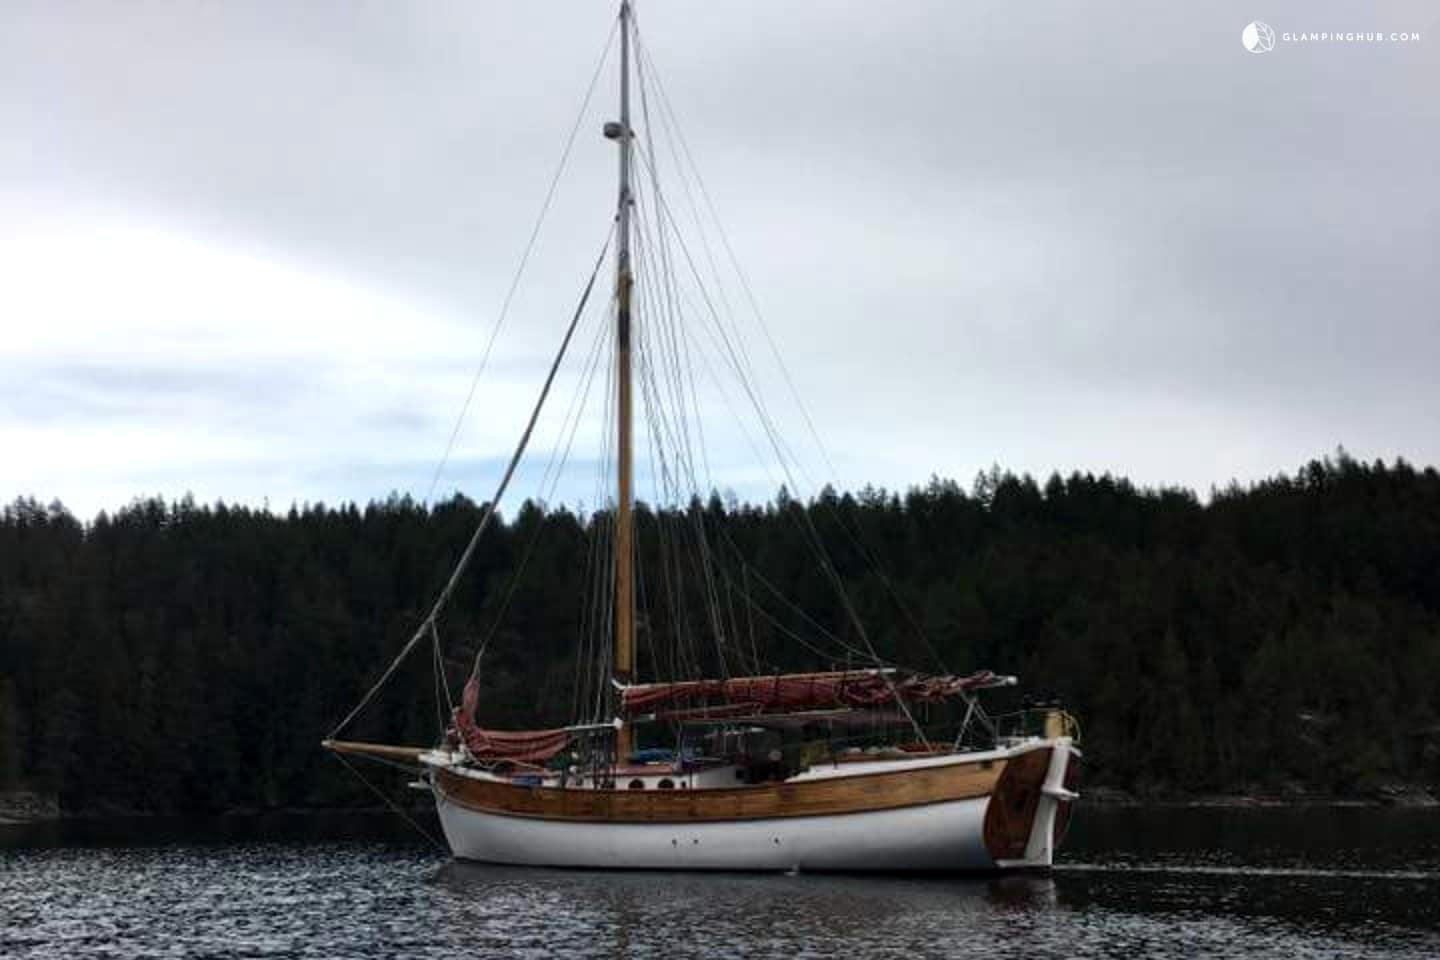 Glamping in the Pacific Northwest: Washington Sail Boat